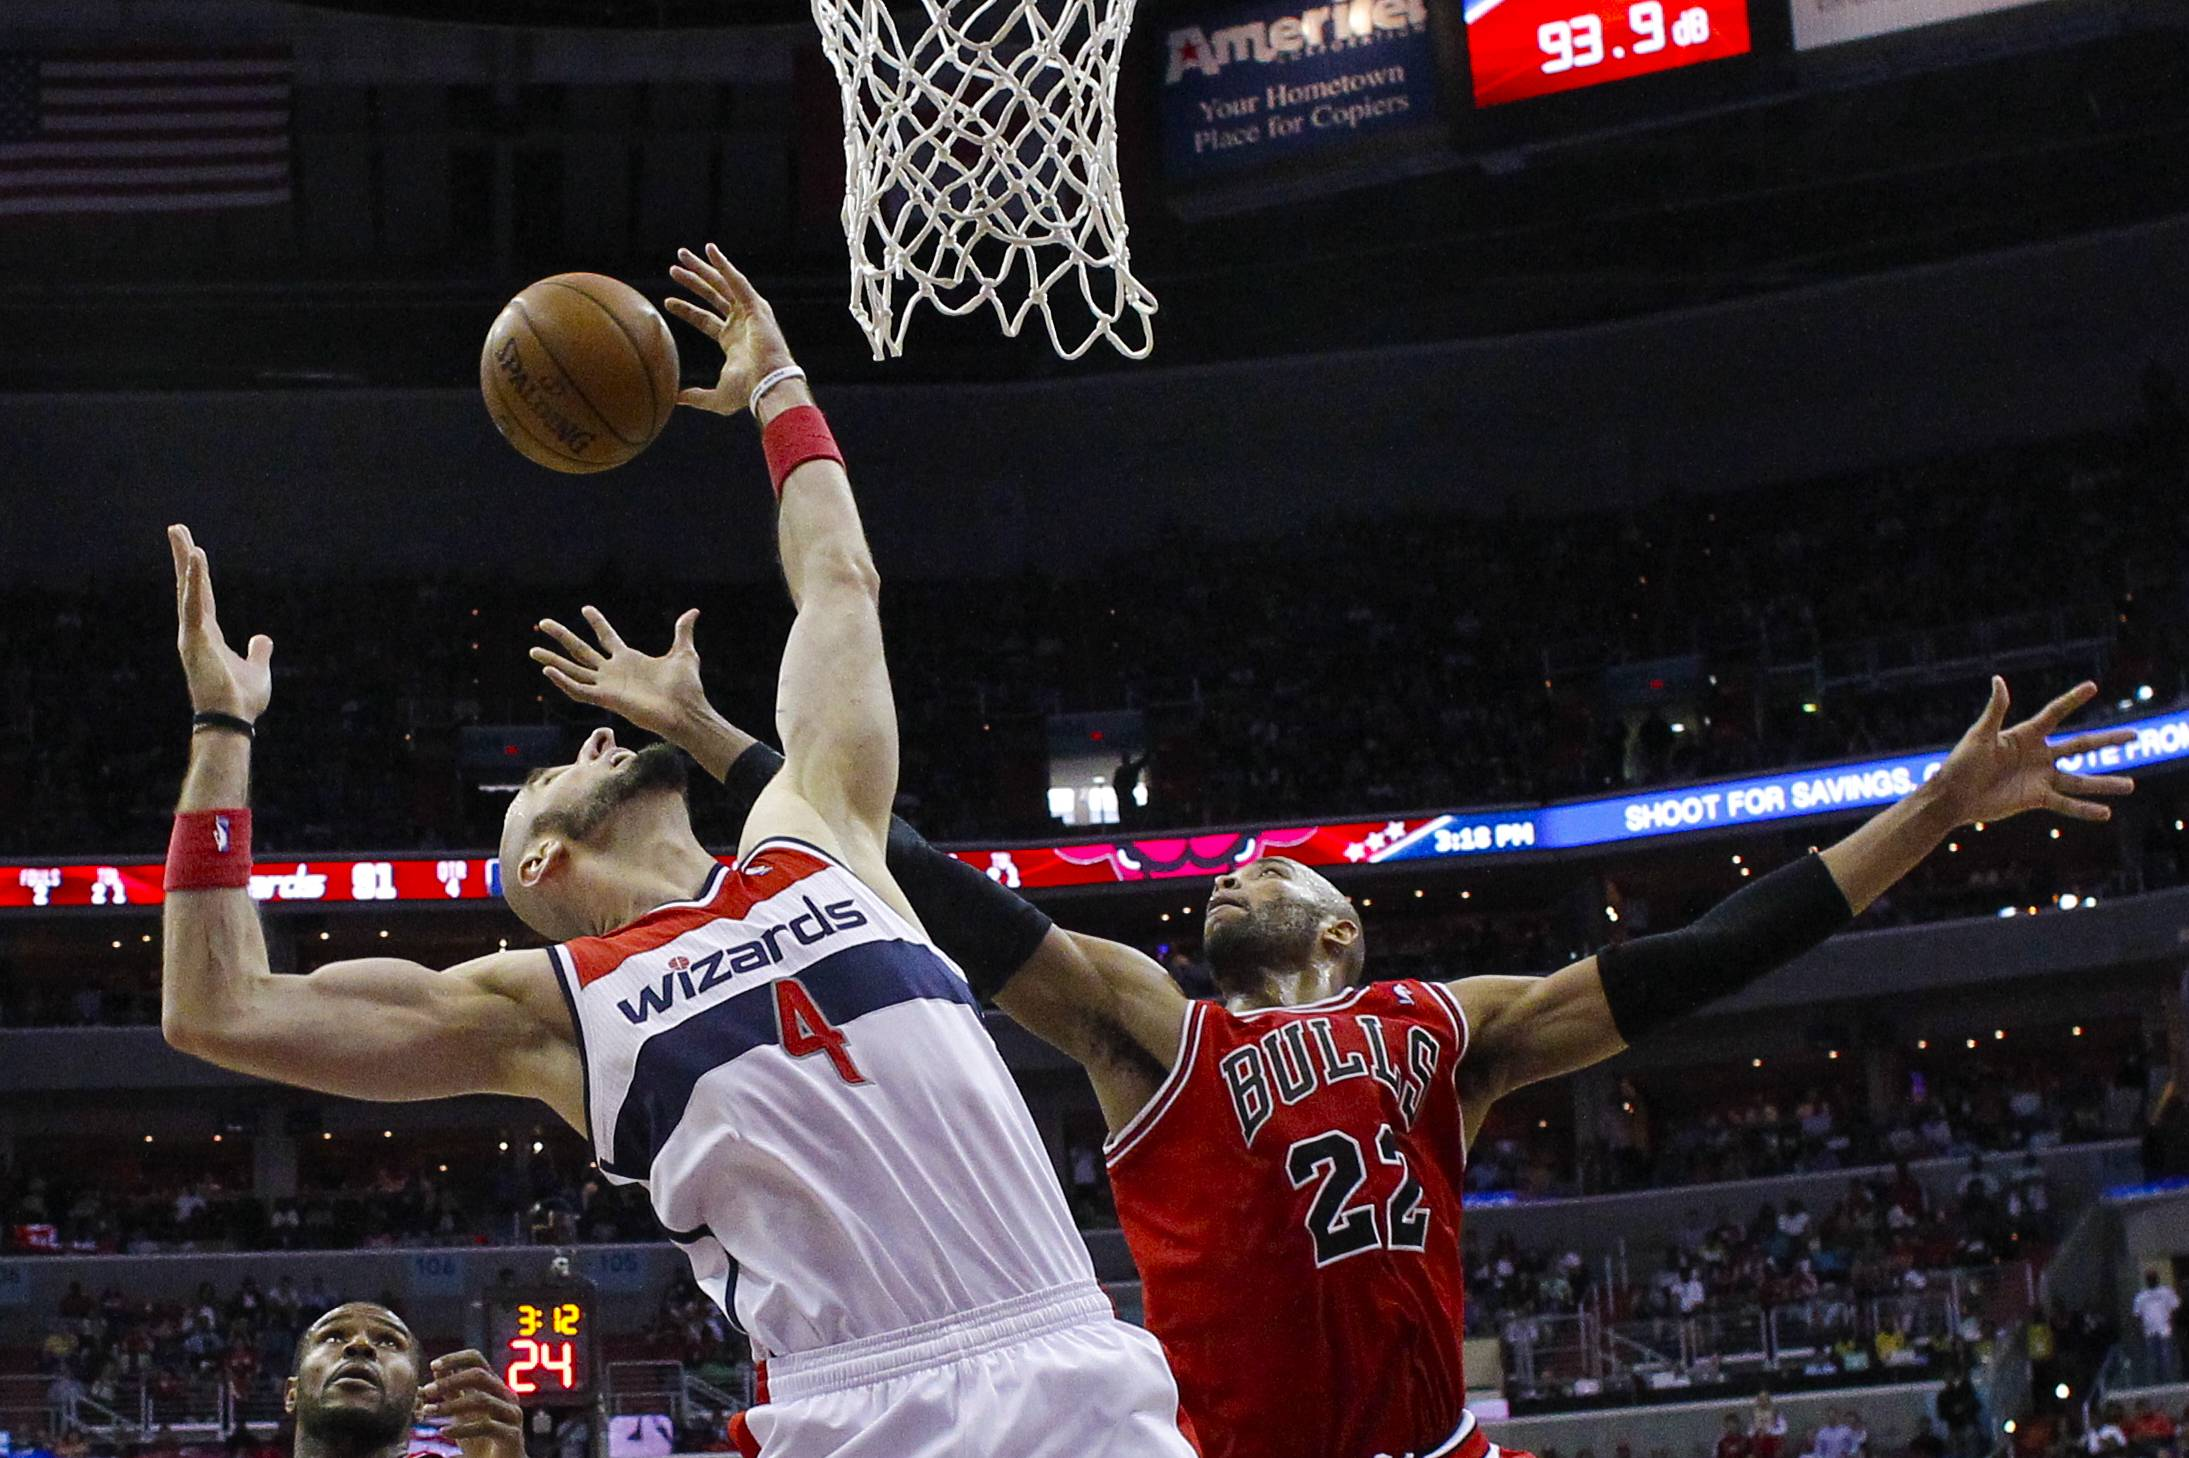 Chicago Bulls forward Taj Gibson (22) and Washington Wizards center Marcin Gortat (4) battle for control of the ball during the second half. The Wizards defeated the Bulls 98-89.